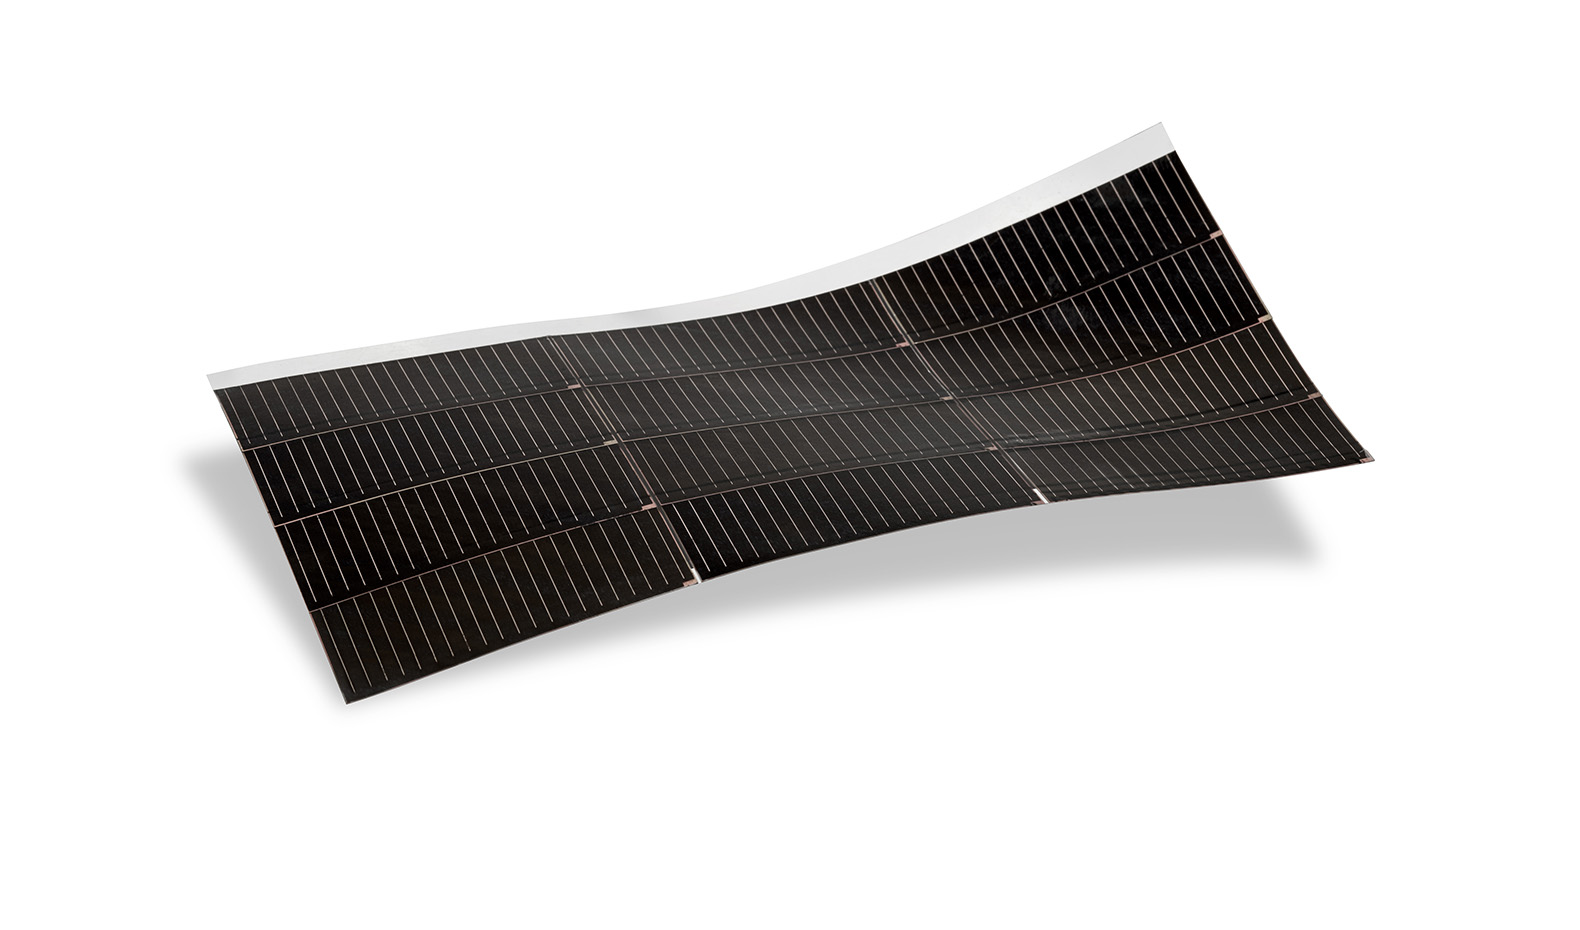 Hanergy's thin solar panels break multiple world records for efficiency